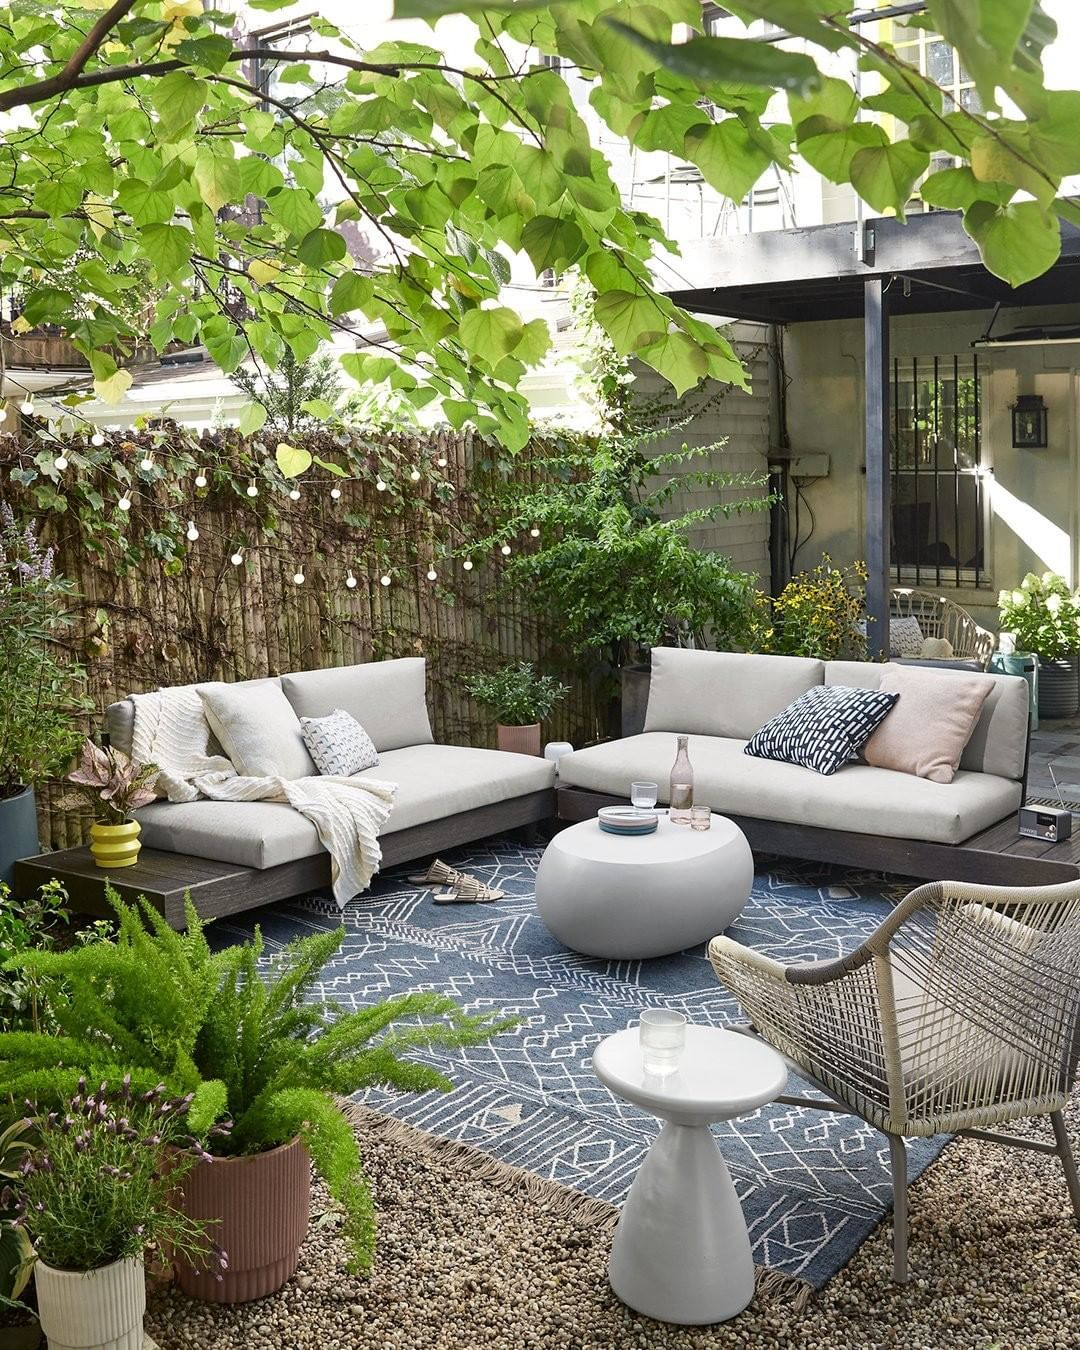 West Elm Furniture Decor On Instagram Picture Yourself Here Pretty Nice Right Now Make It A Reality With In 2020 Backyard Furniture Patio Decor Patio Design